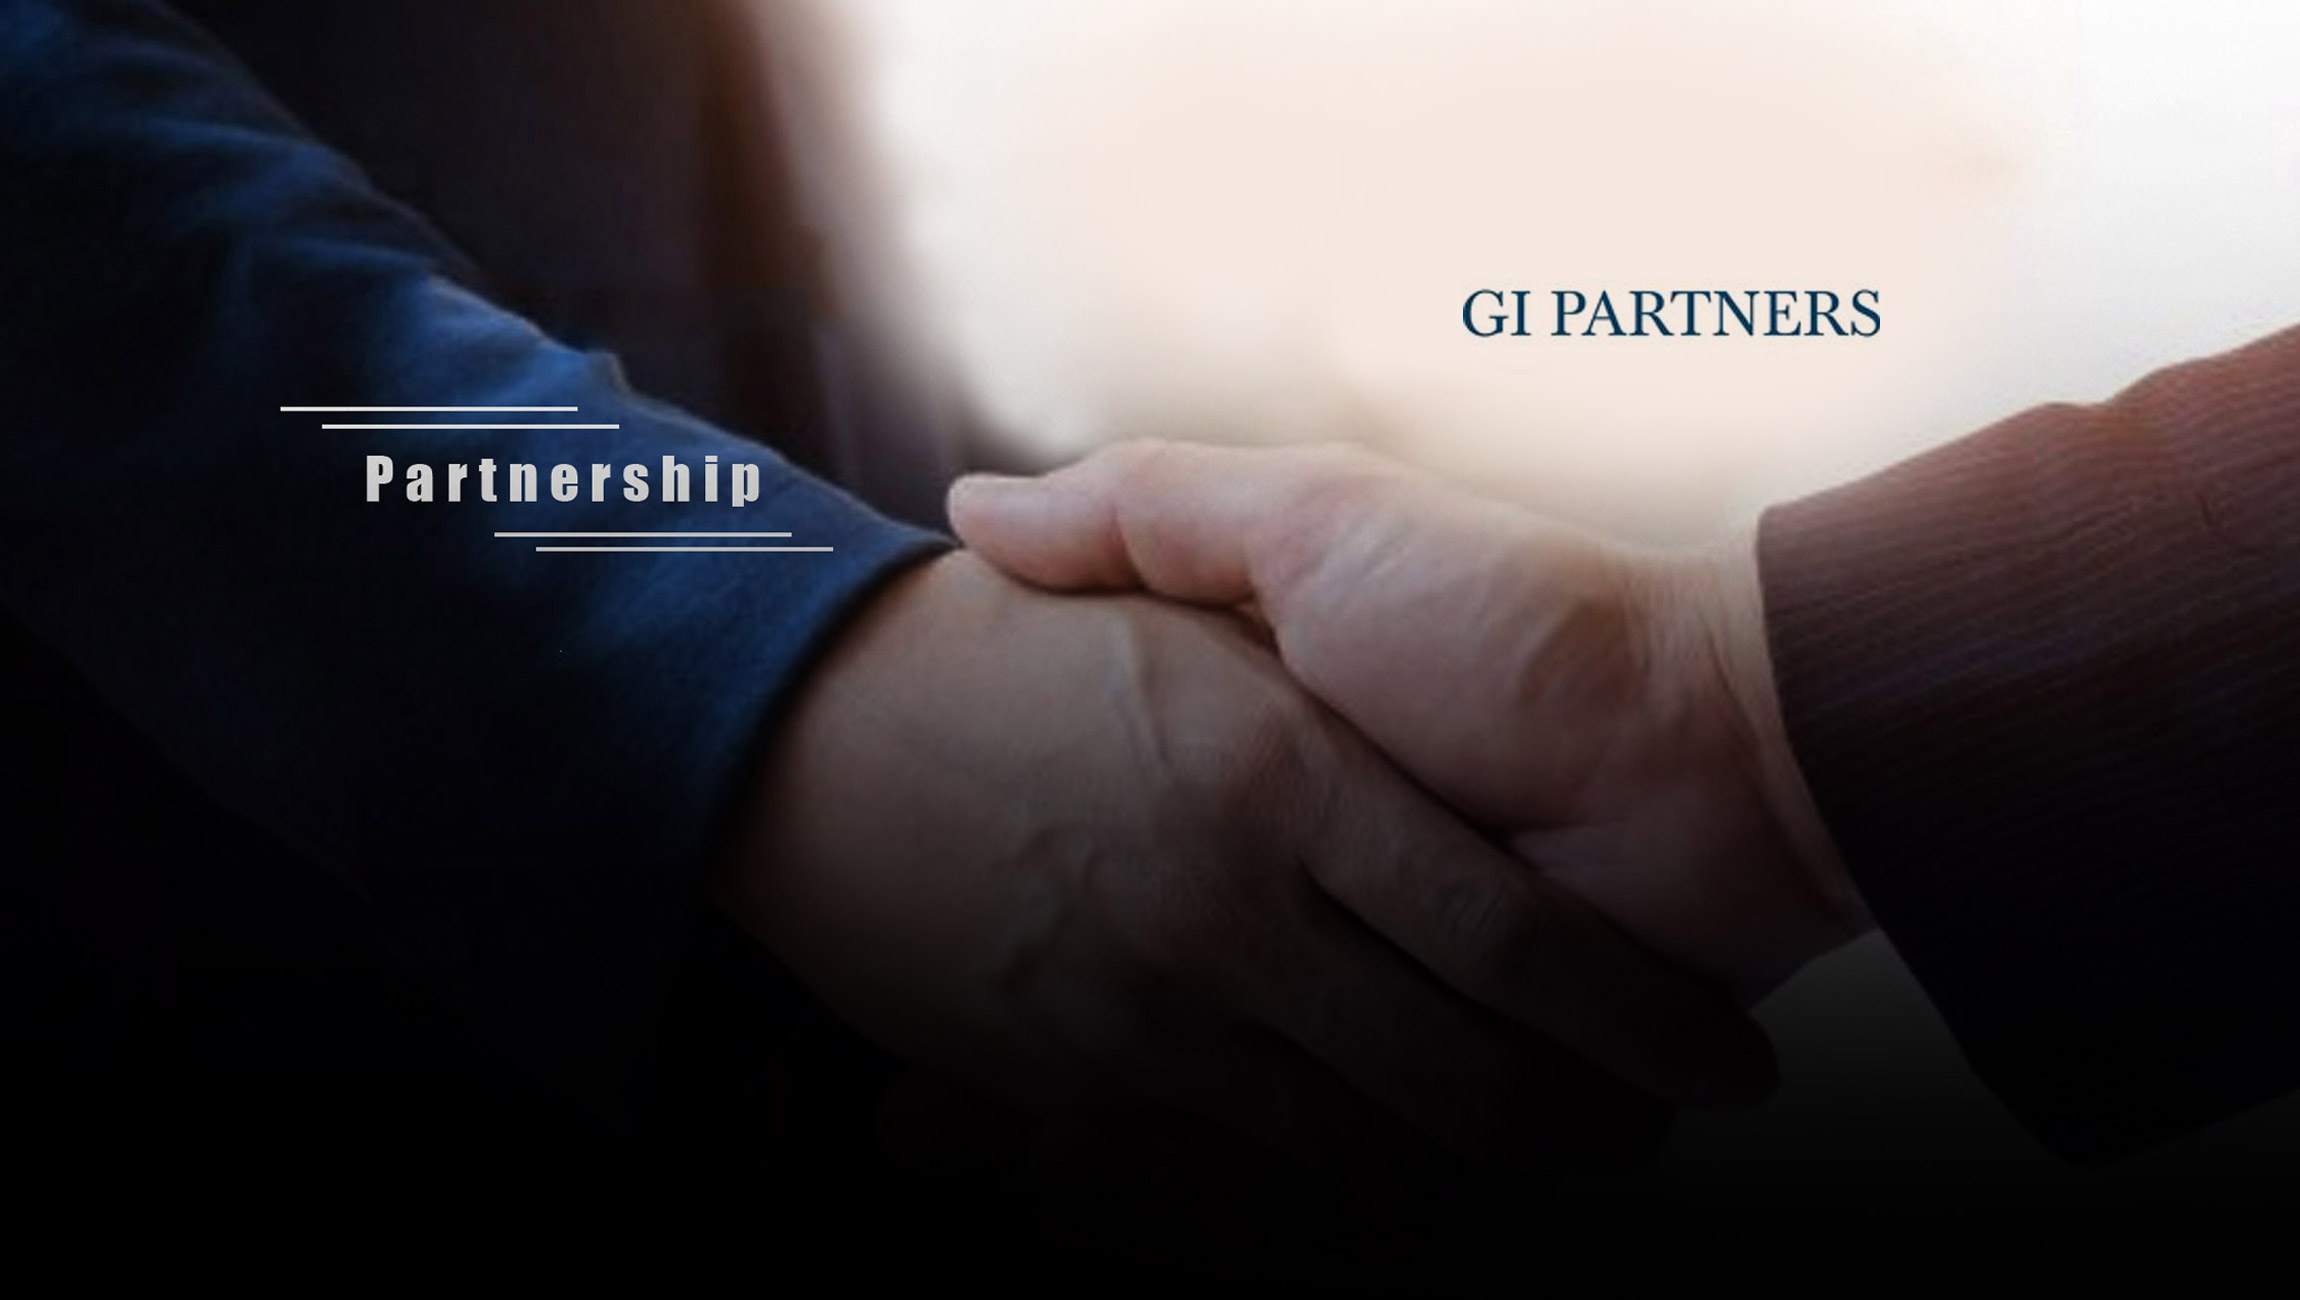 Sectigo to Be Acquired by GI Partners